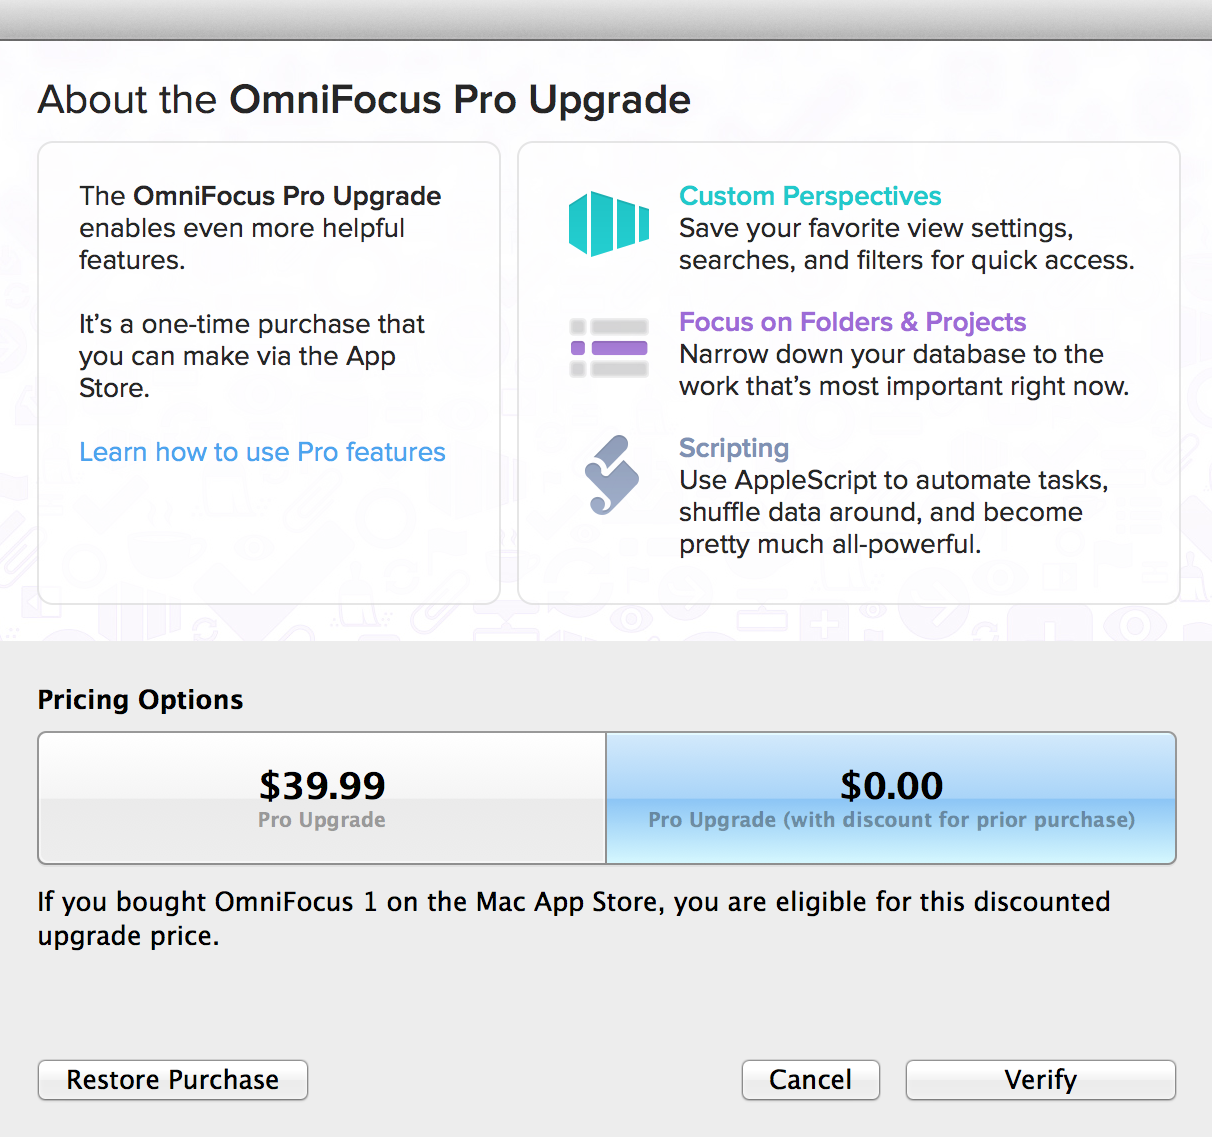 About the OmniFocus Pro Upgrade